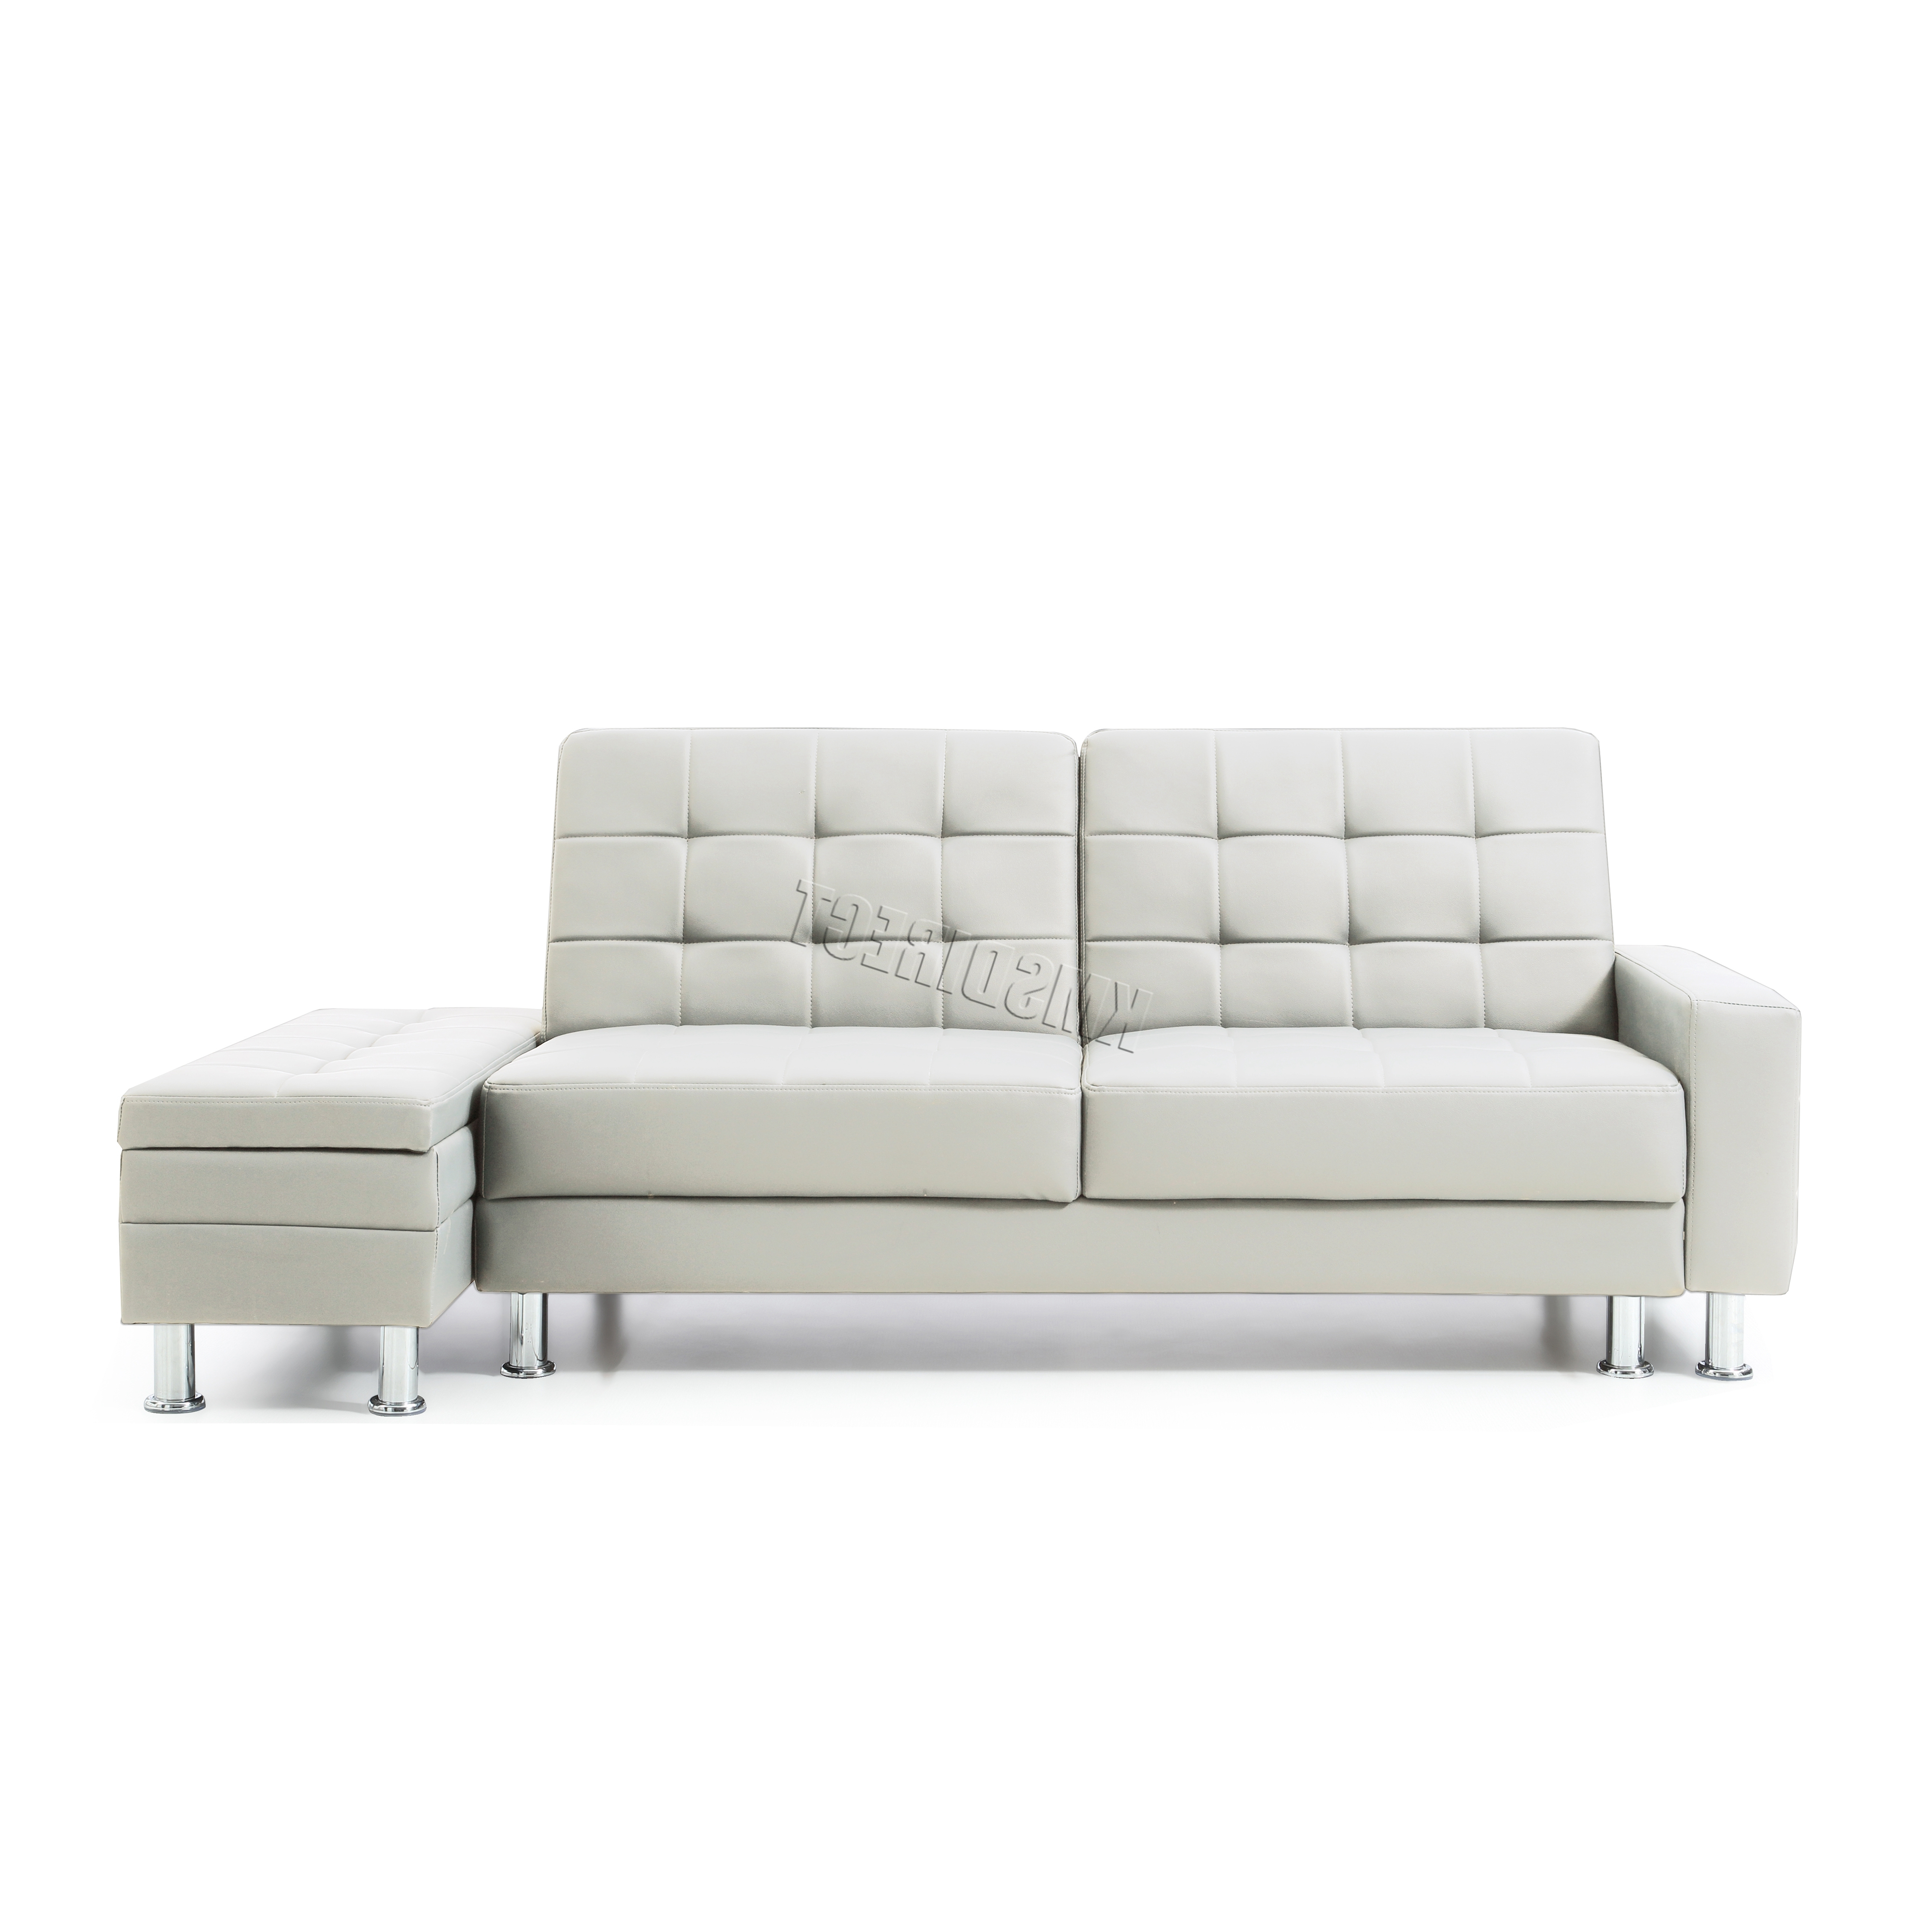 Taren Reversible Sofa/chaise Sleeper Sectionals With Storage Ottoman Inside Famous Sofa Bed With Ottoman – Sofa Ideas (View 18 of 20)